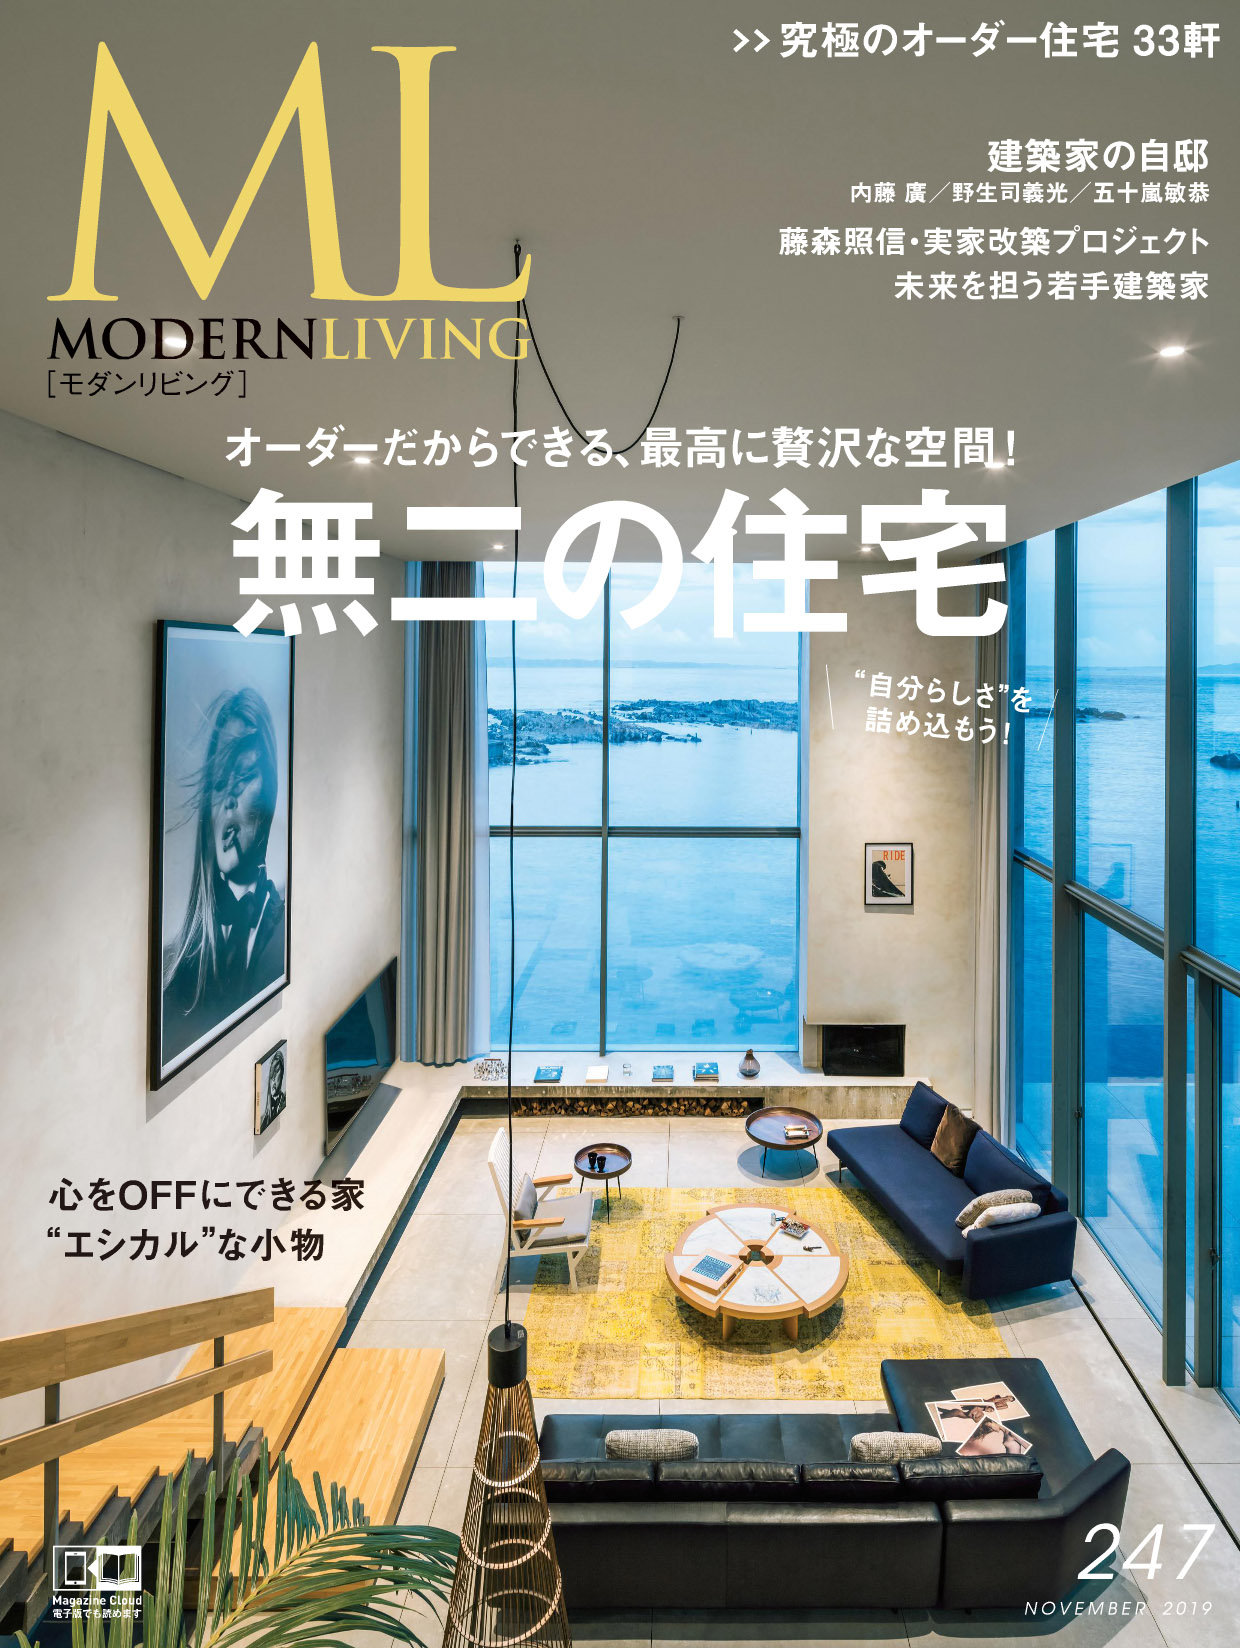 MODERN LIVING Now On Sale!